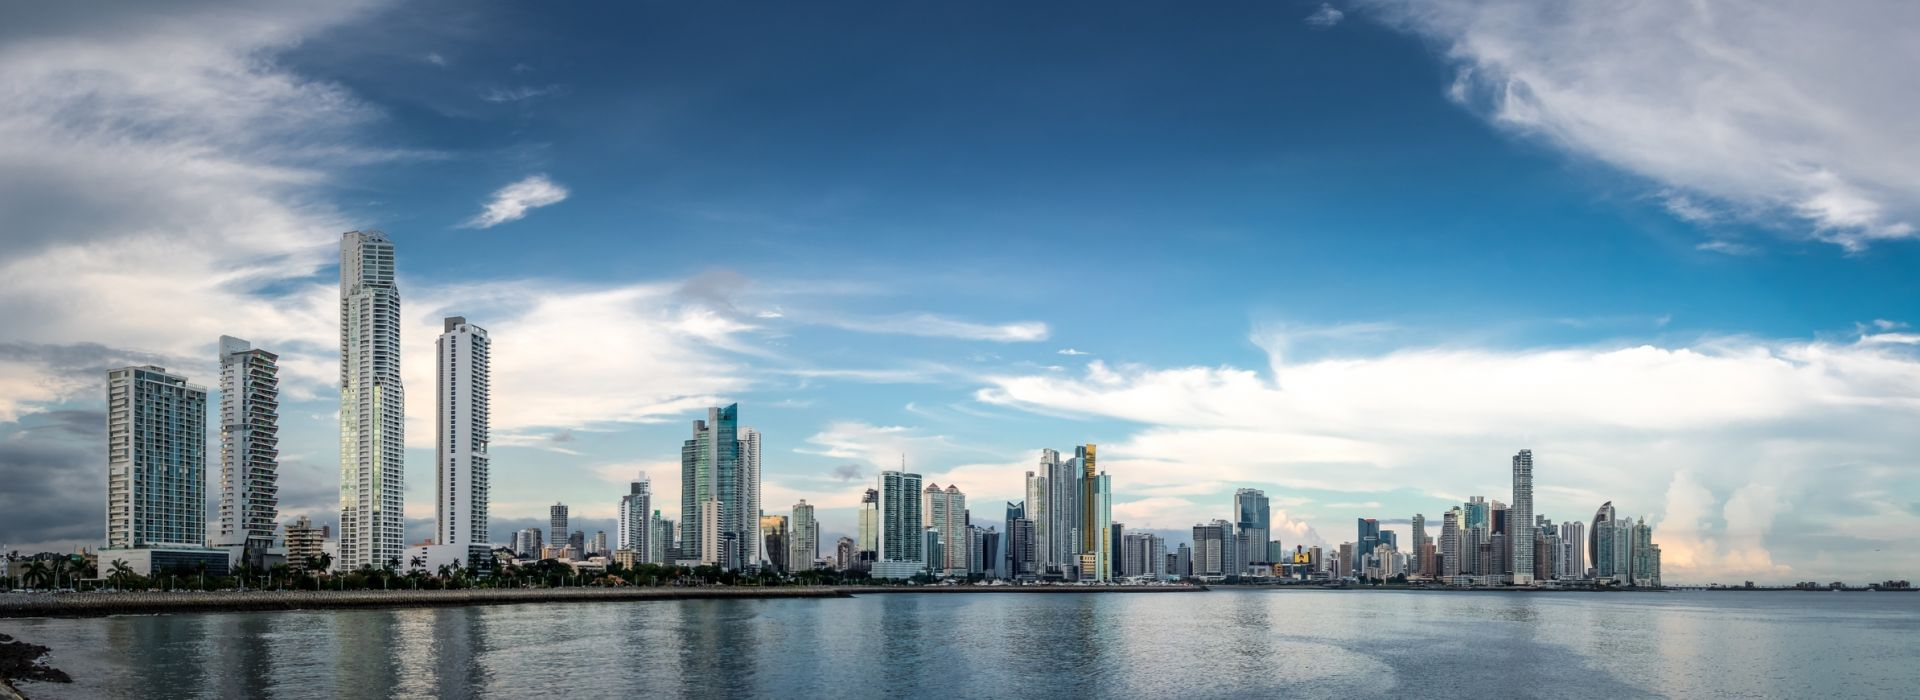 Boat tours, water sports and marine wildlife in Panama